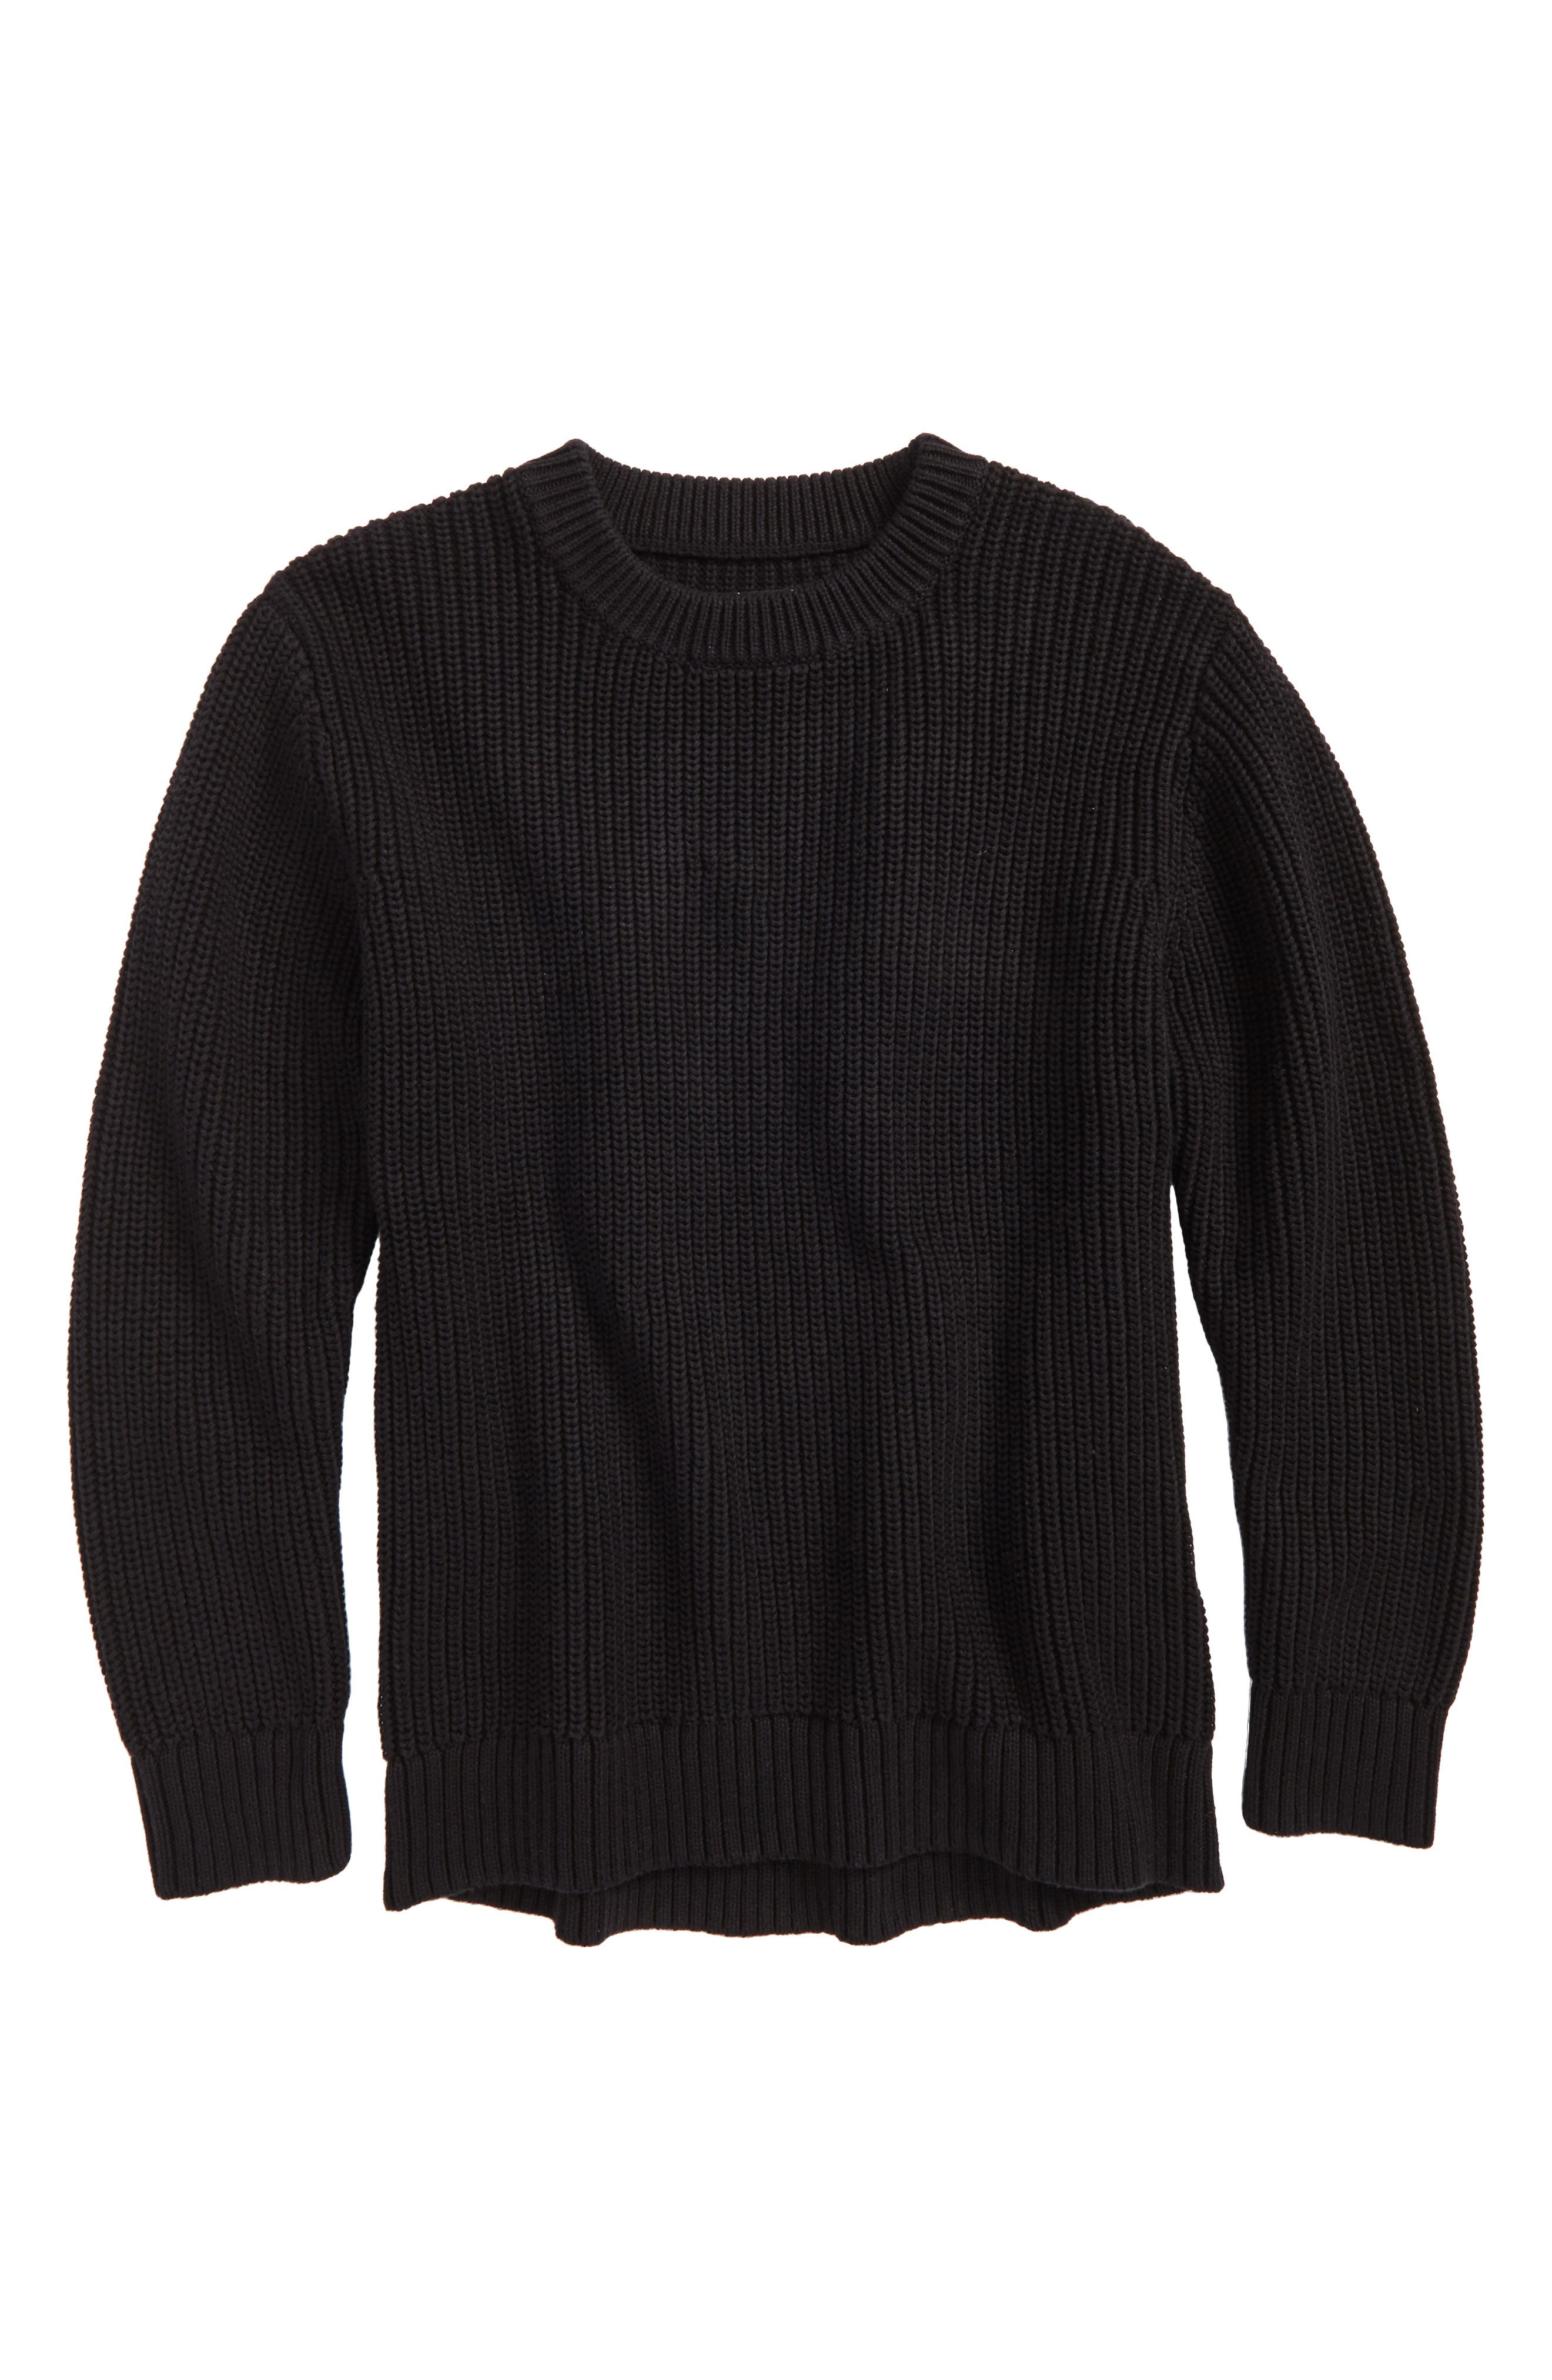 Alternate Image 1 Selected - Treasure & Bond Heavy Stitch Sweater (Big Boys)